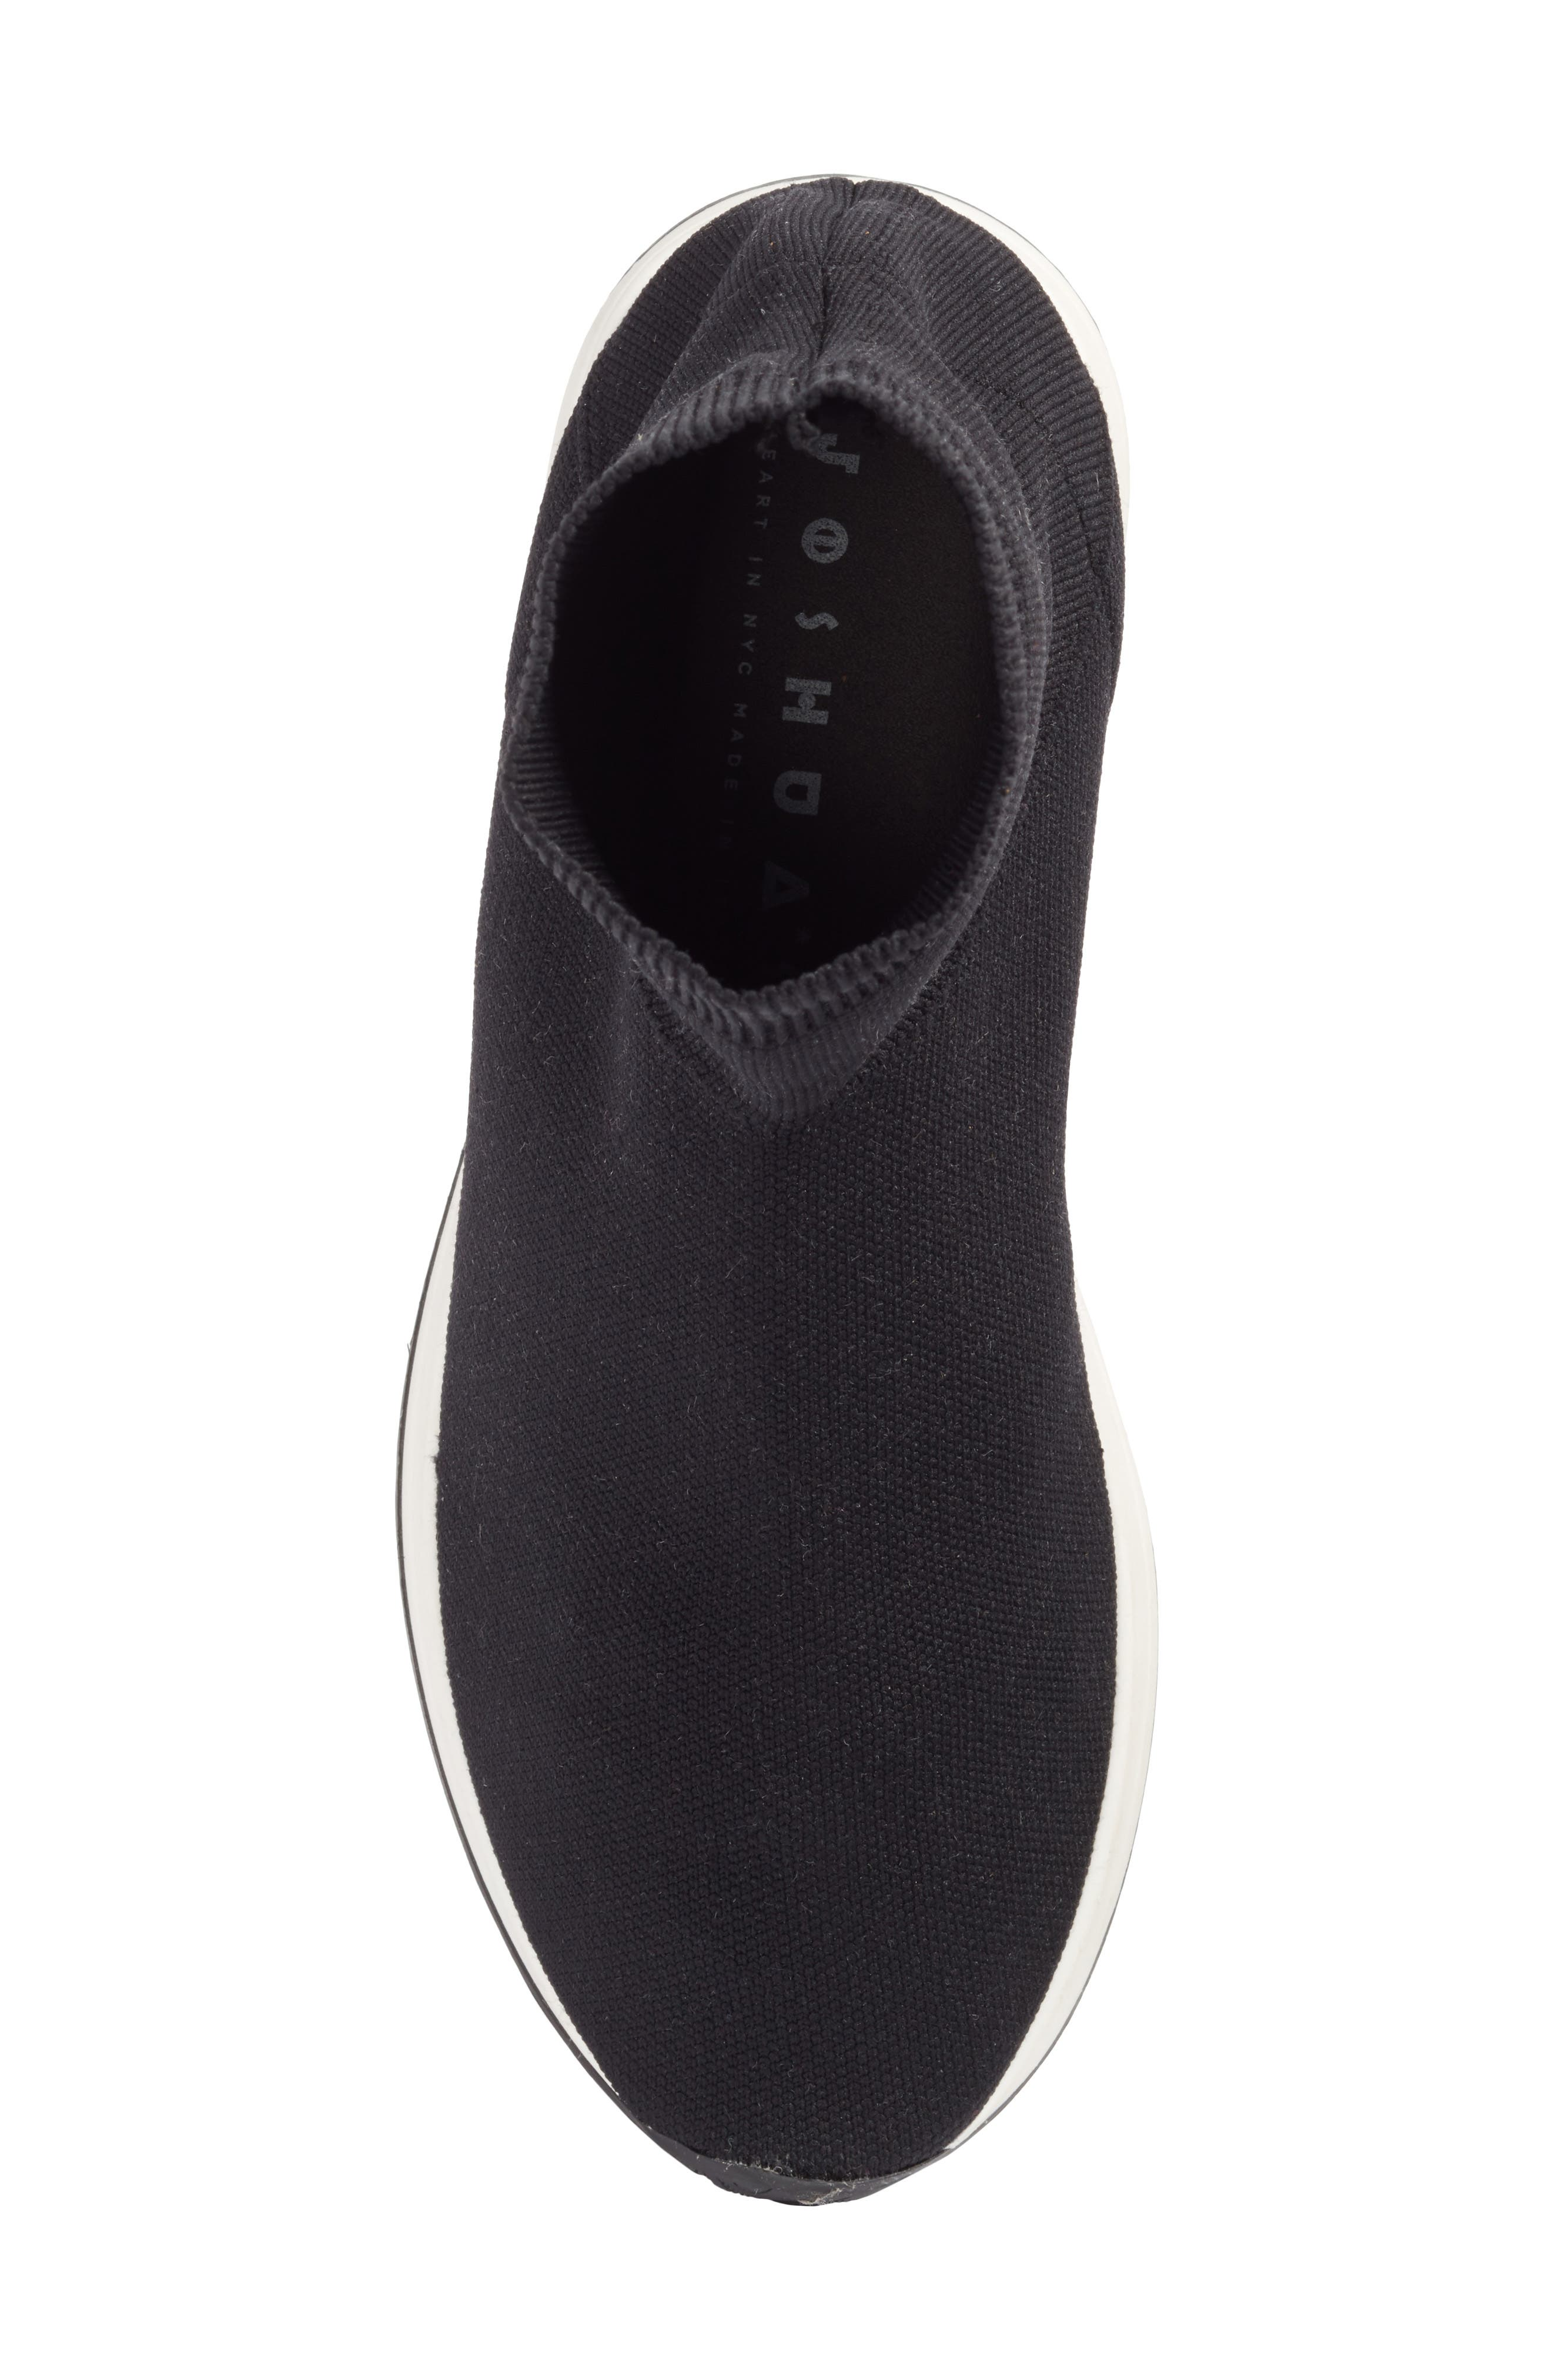 Fly To High Top Sock Sneaker,                             Alternate thumbnail 5, color,                             002